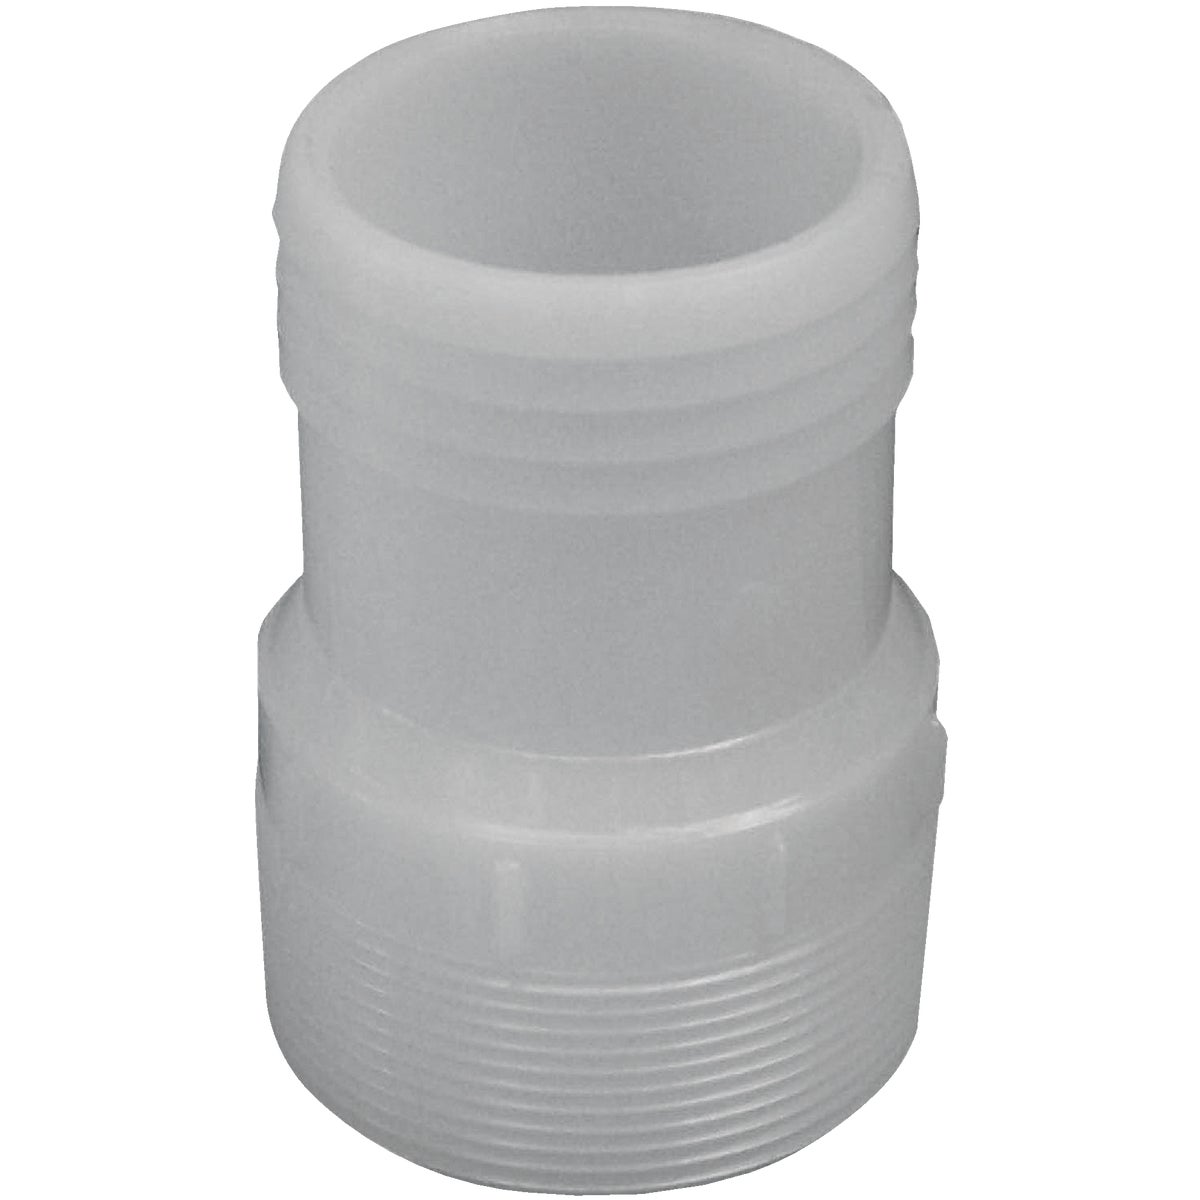 "2"" NYLON MXINS ADAPTER - 360420 by Genova Inc"